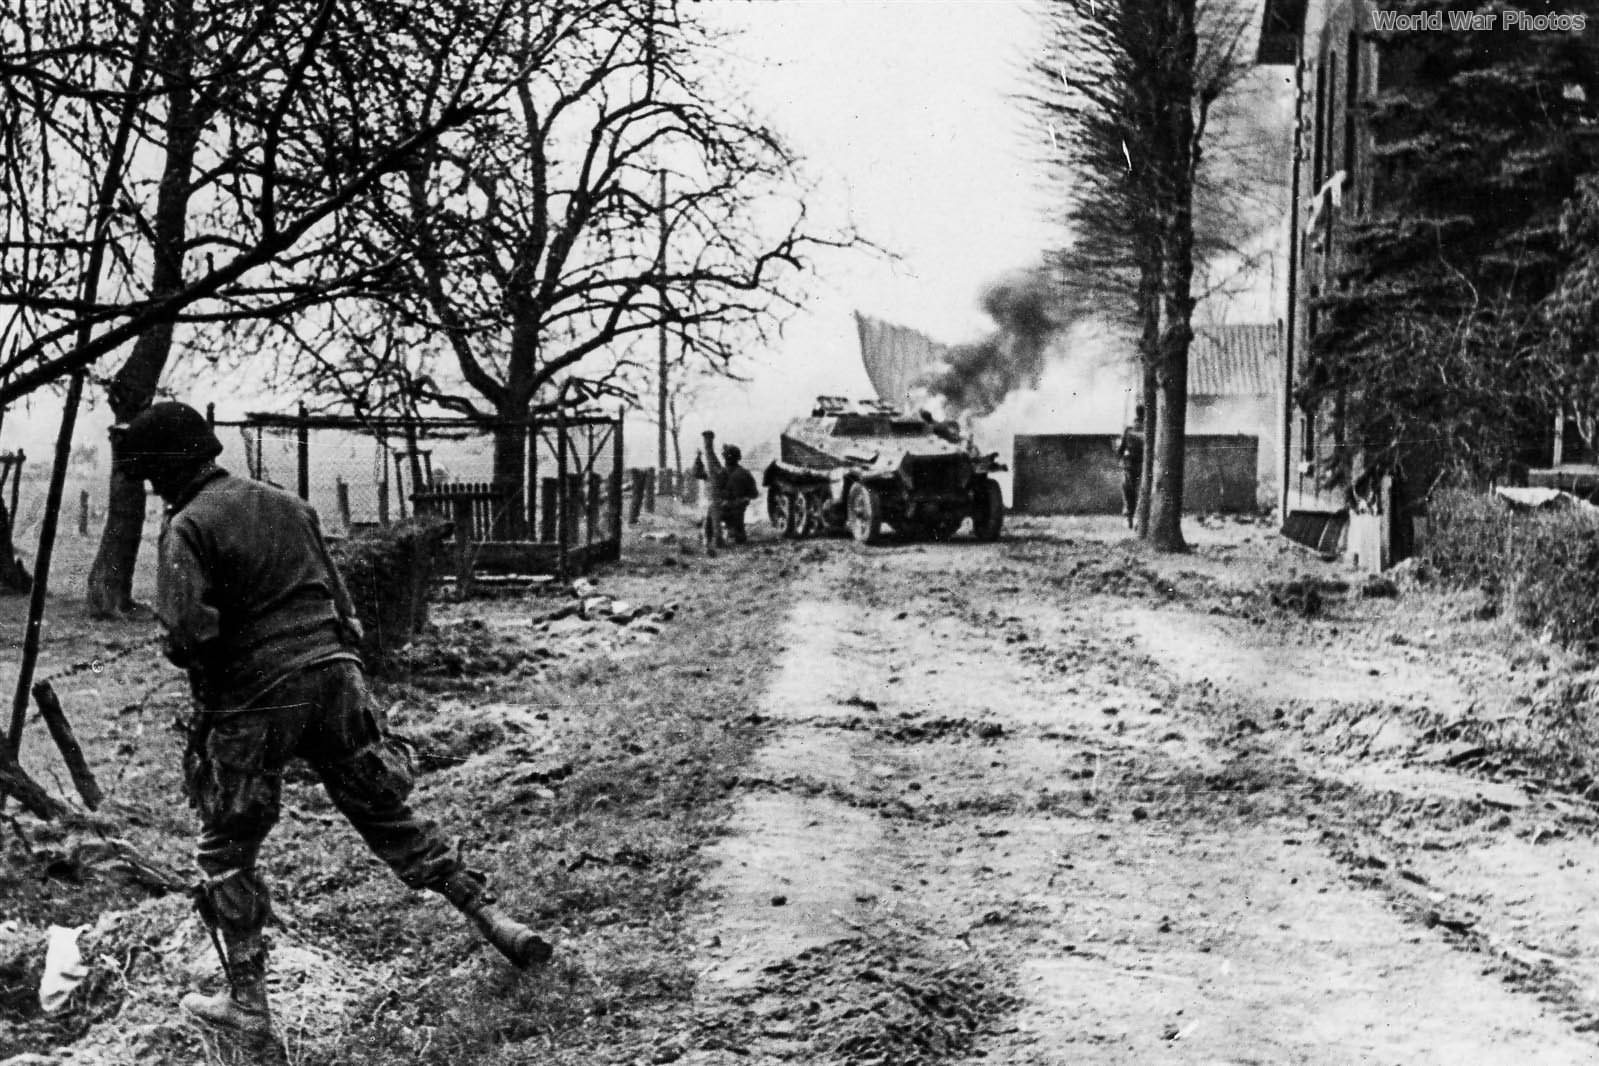 17th Airborne Division Paratroopers with SdKfz 250 24mar1945